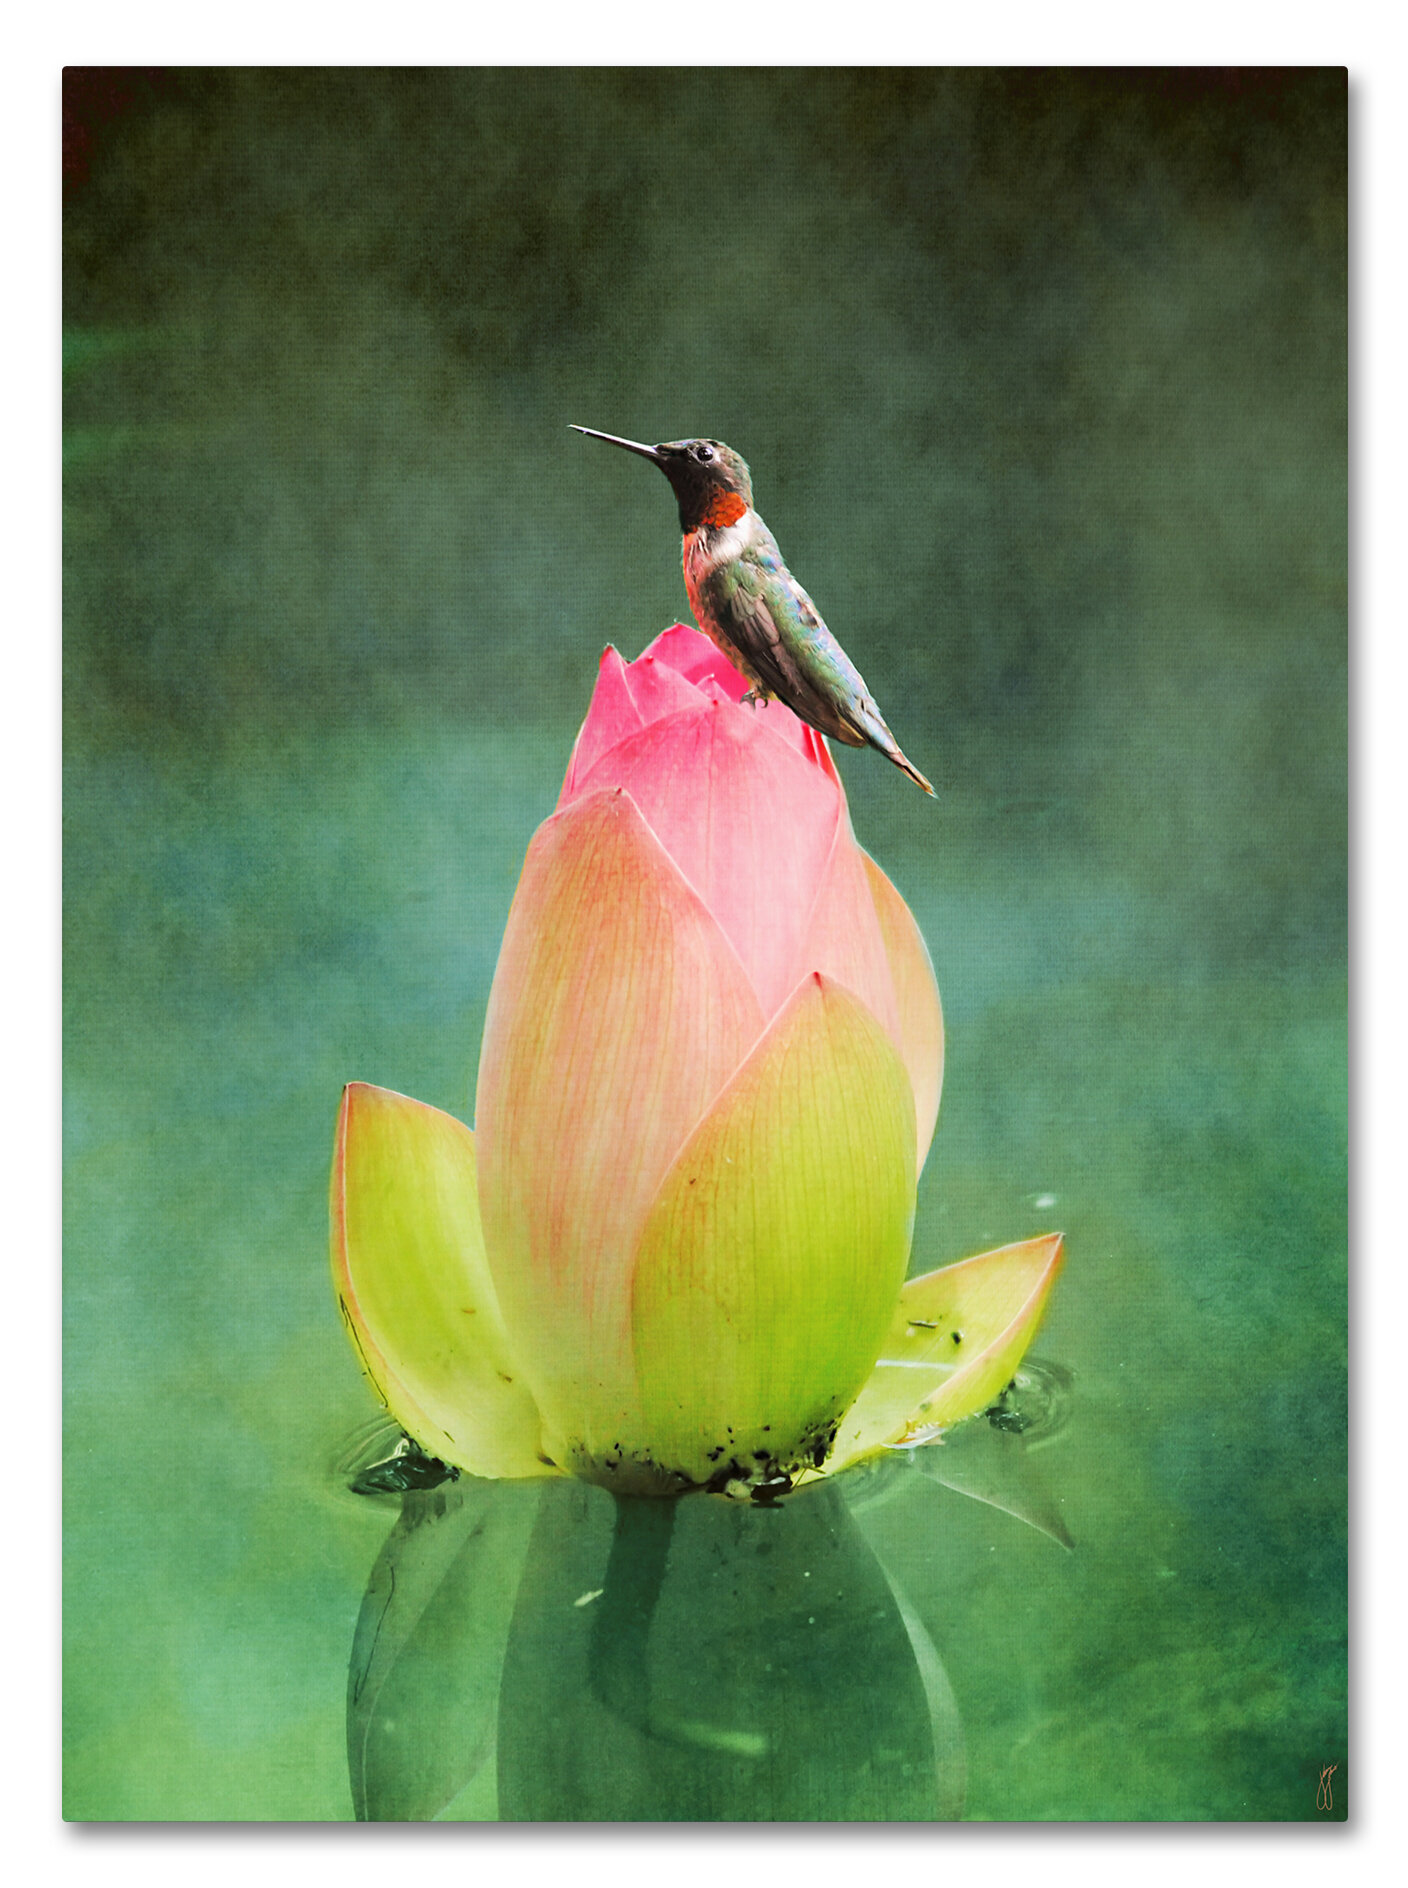 Hummingbird And The Lotus Flower Graphic Art Print On Wrapped Canvas